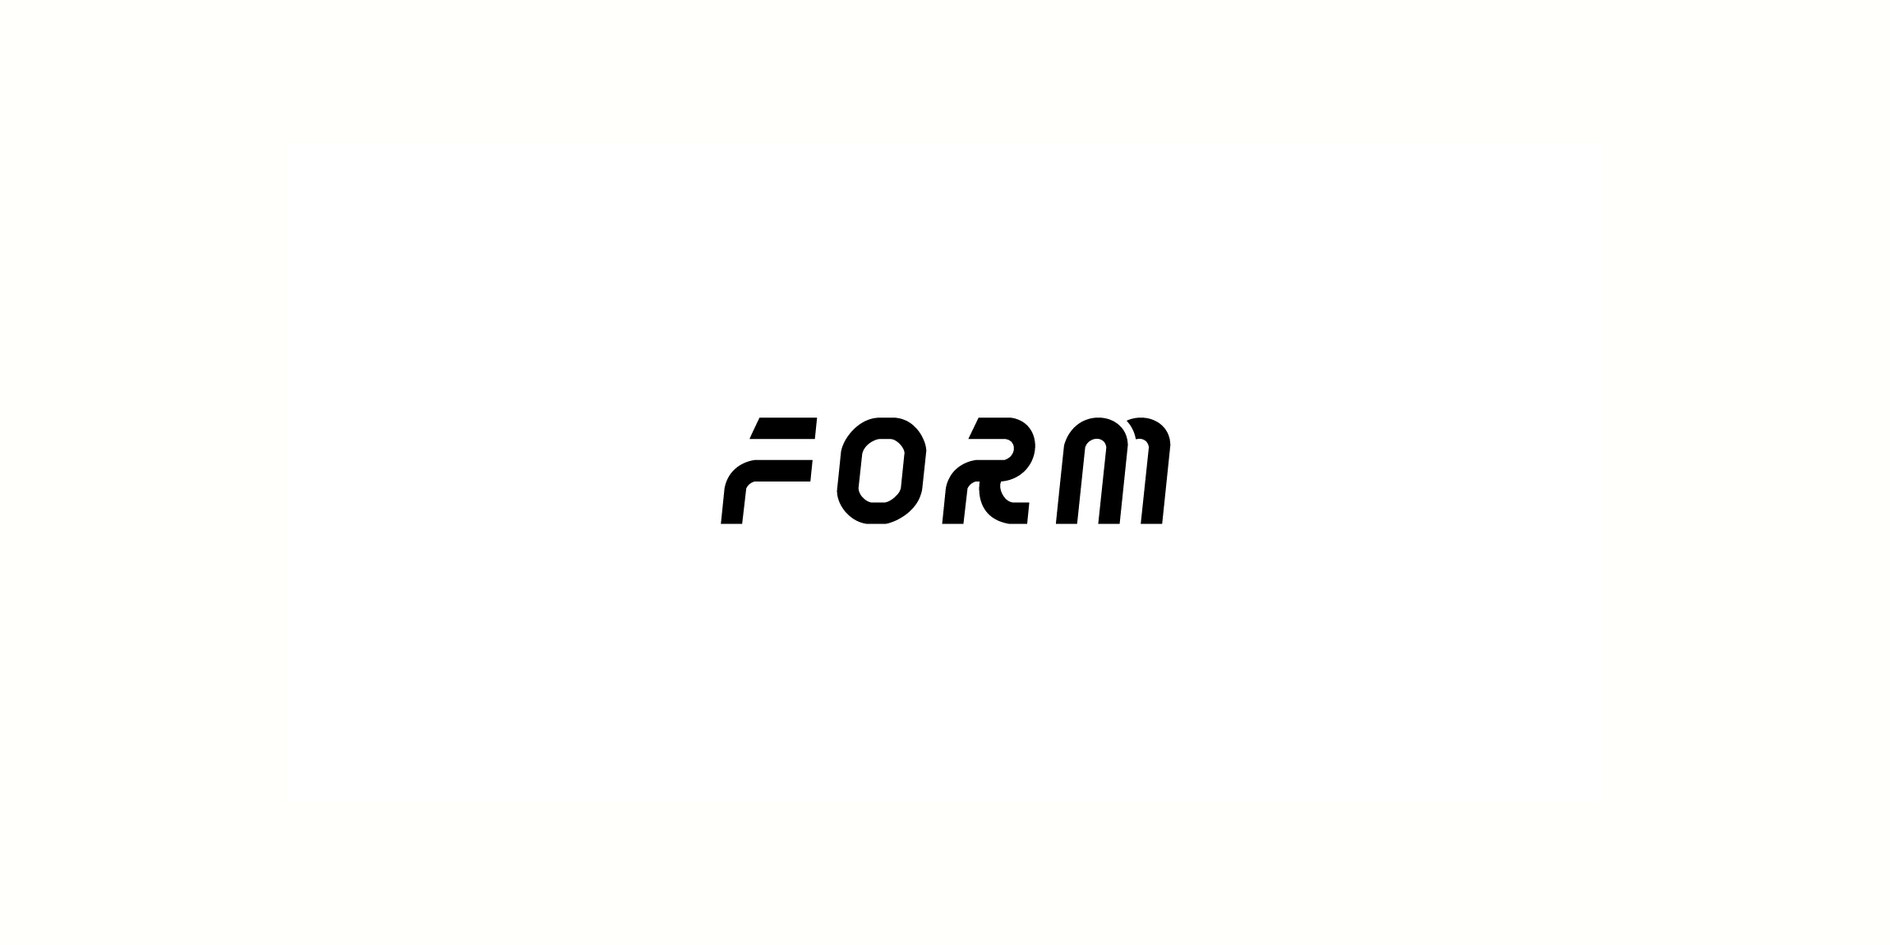 logo-comp-form.jpg